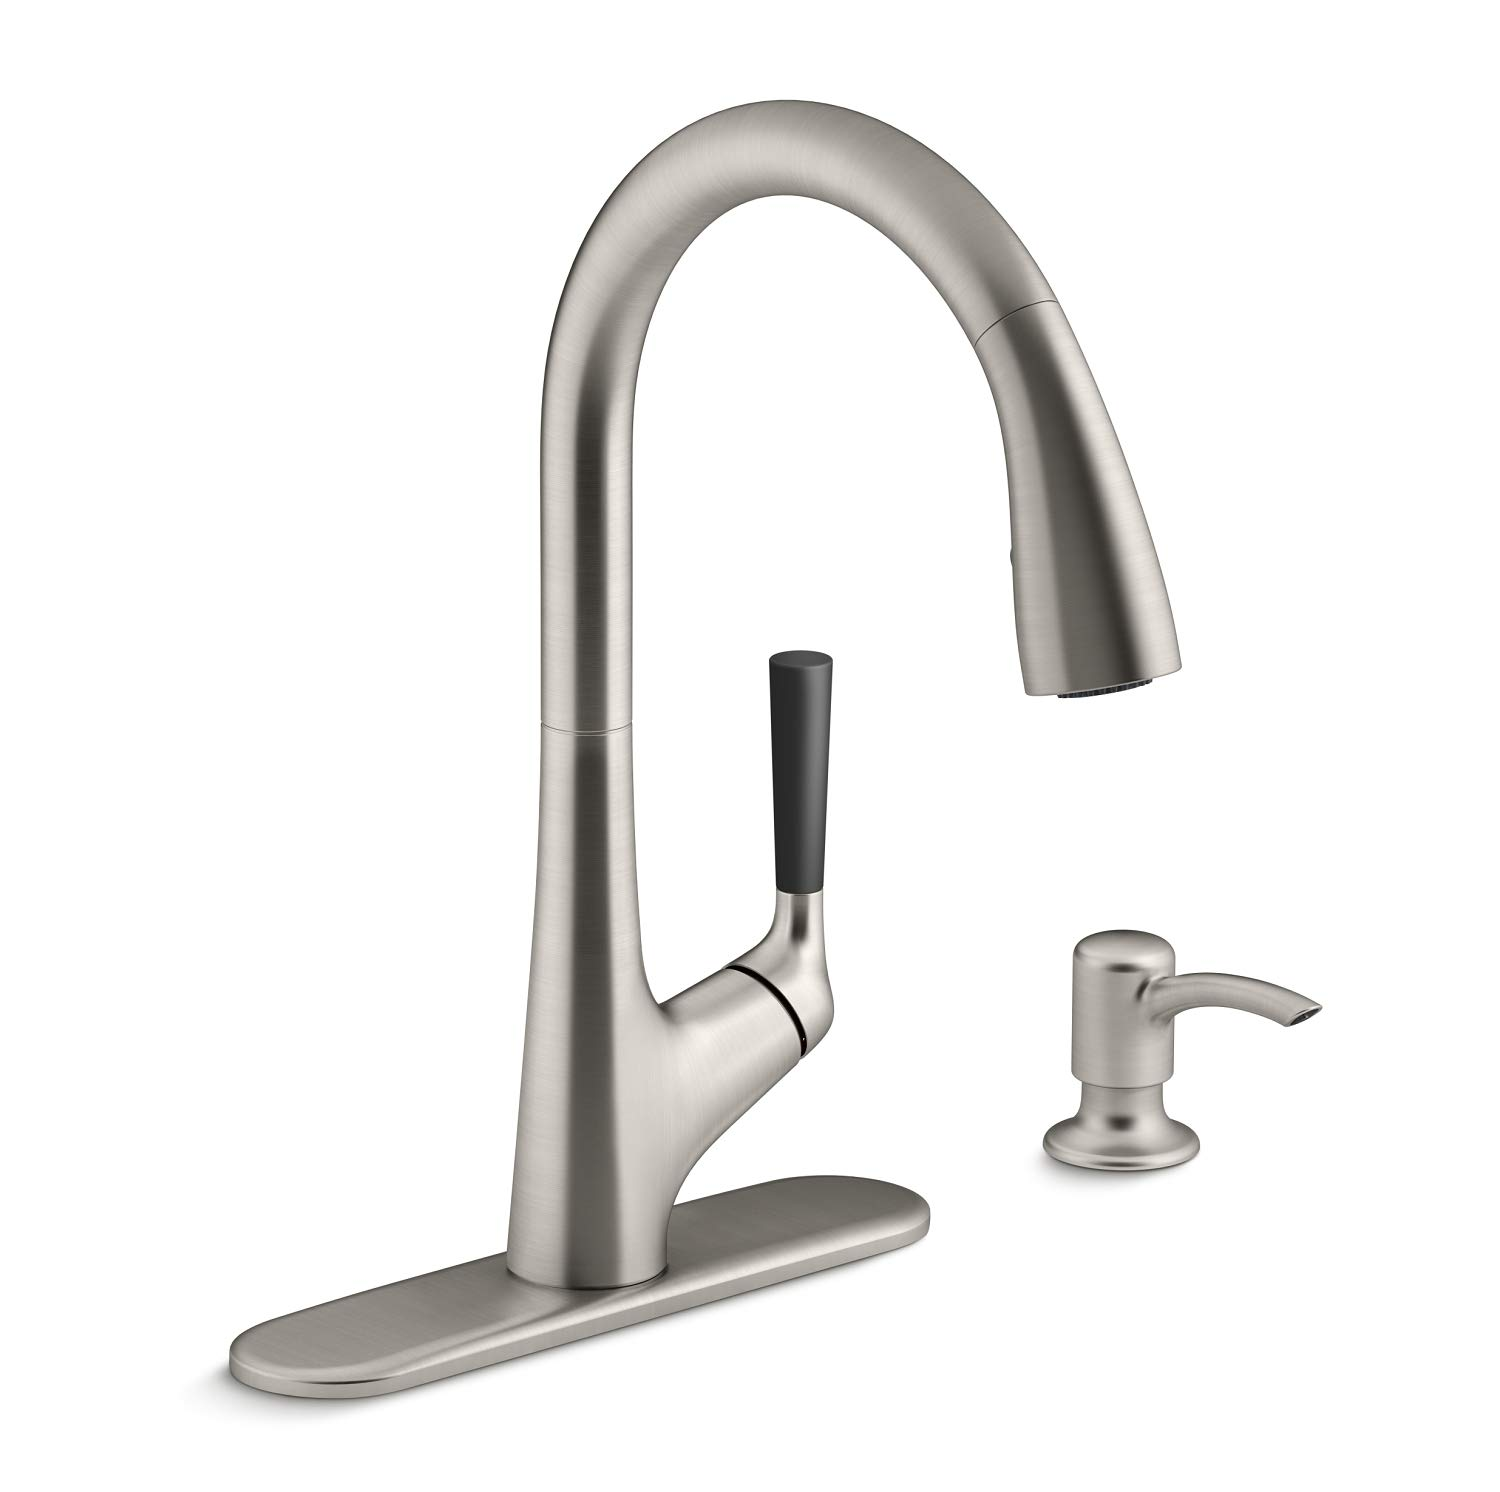 Kohler 562in Sd Vs Malleco Pull Down Sprayer Kitchen Faucet With Multi Function Spray Head Sweep Spray And Docking Buy Online In Bulgaria At Desertcart